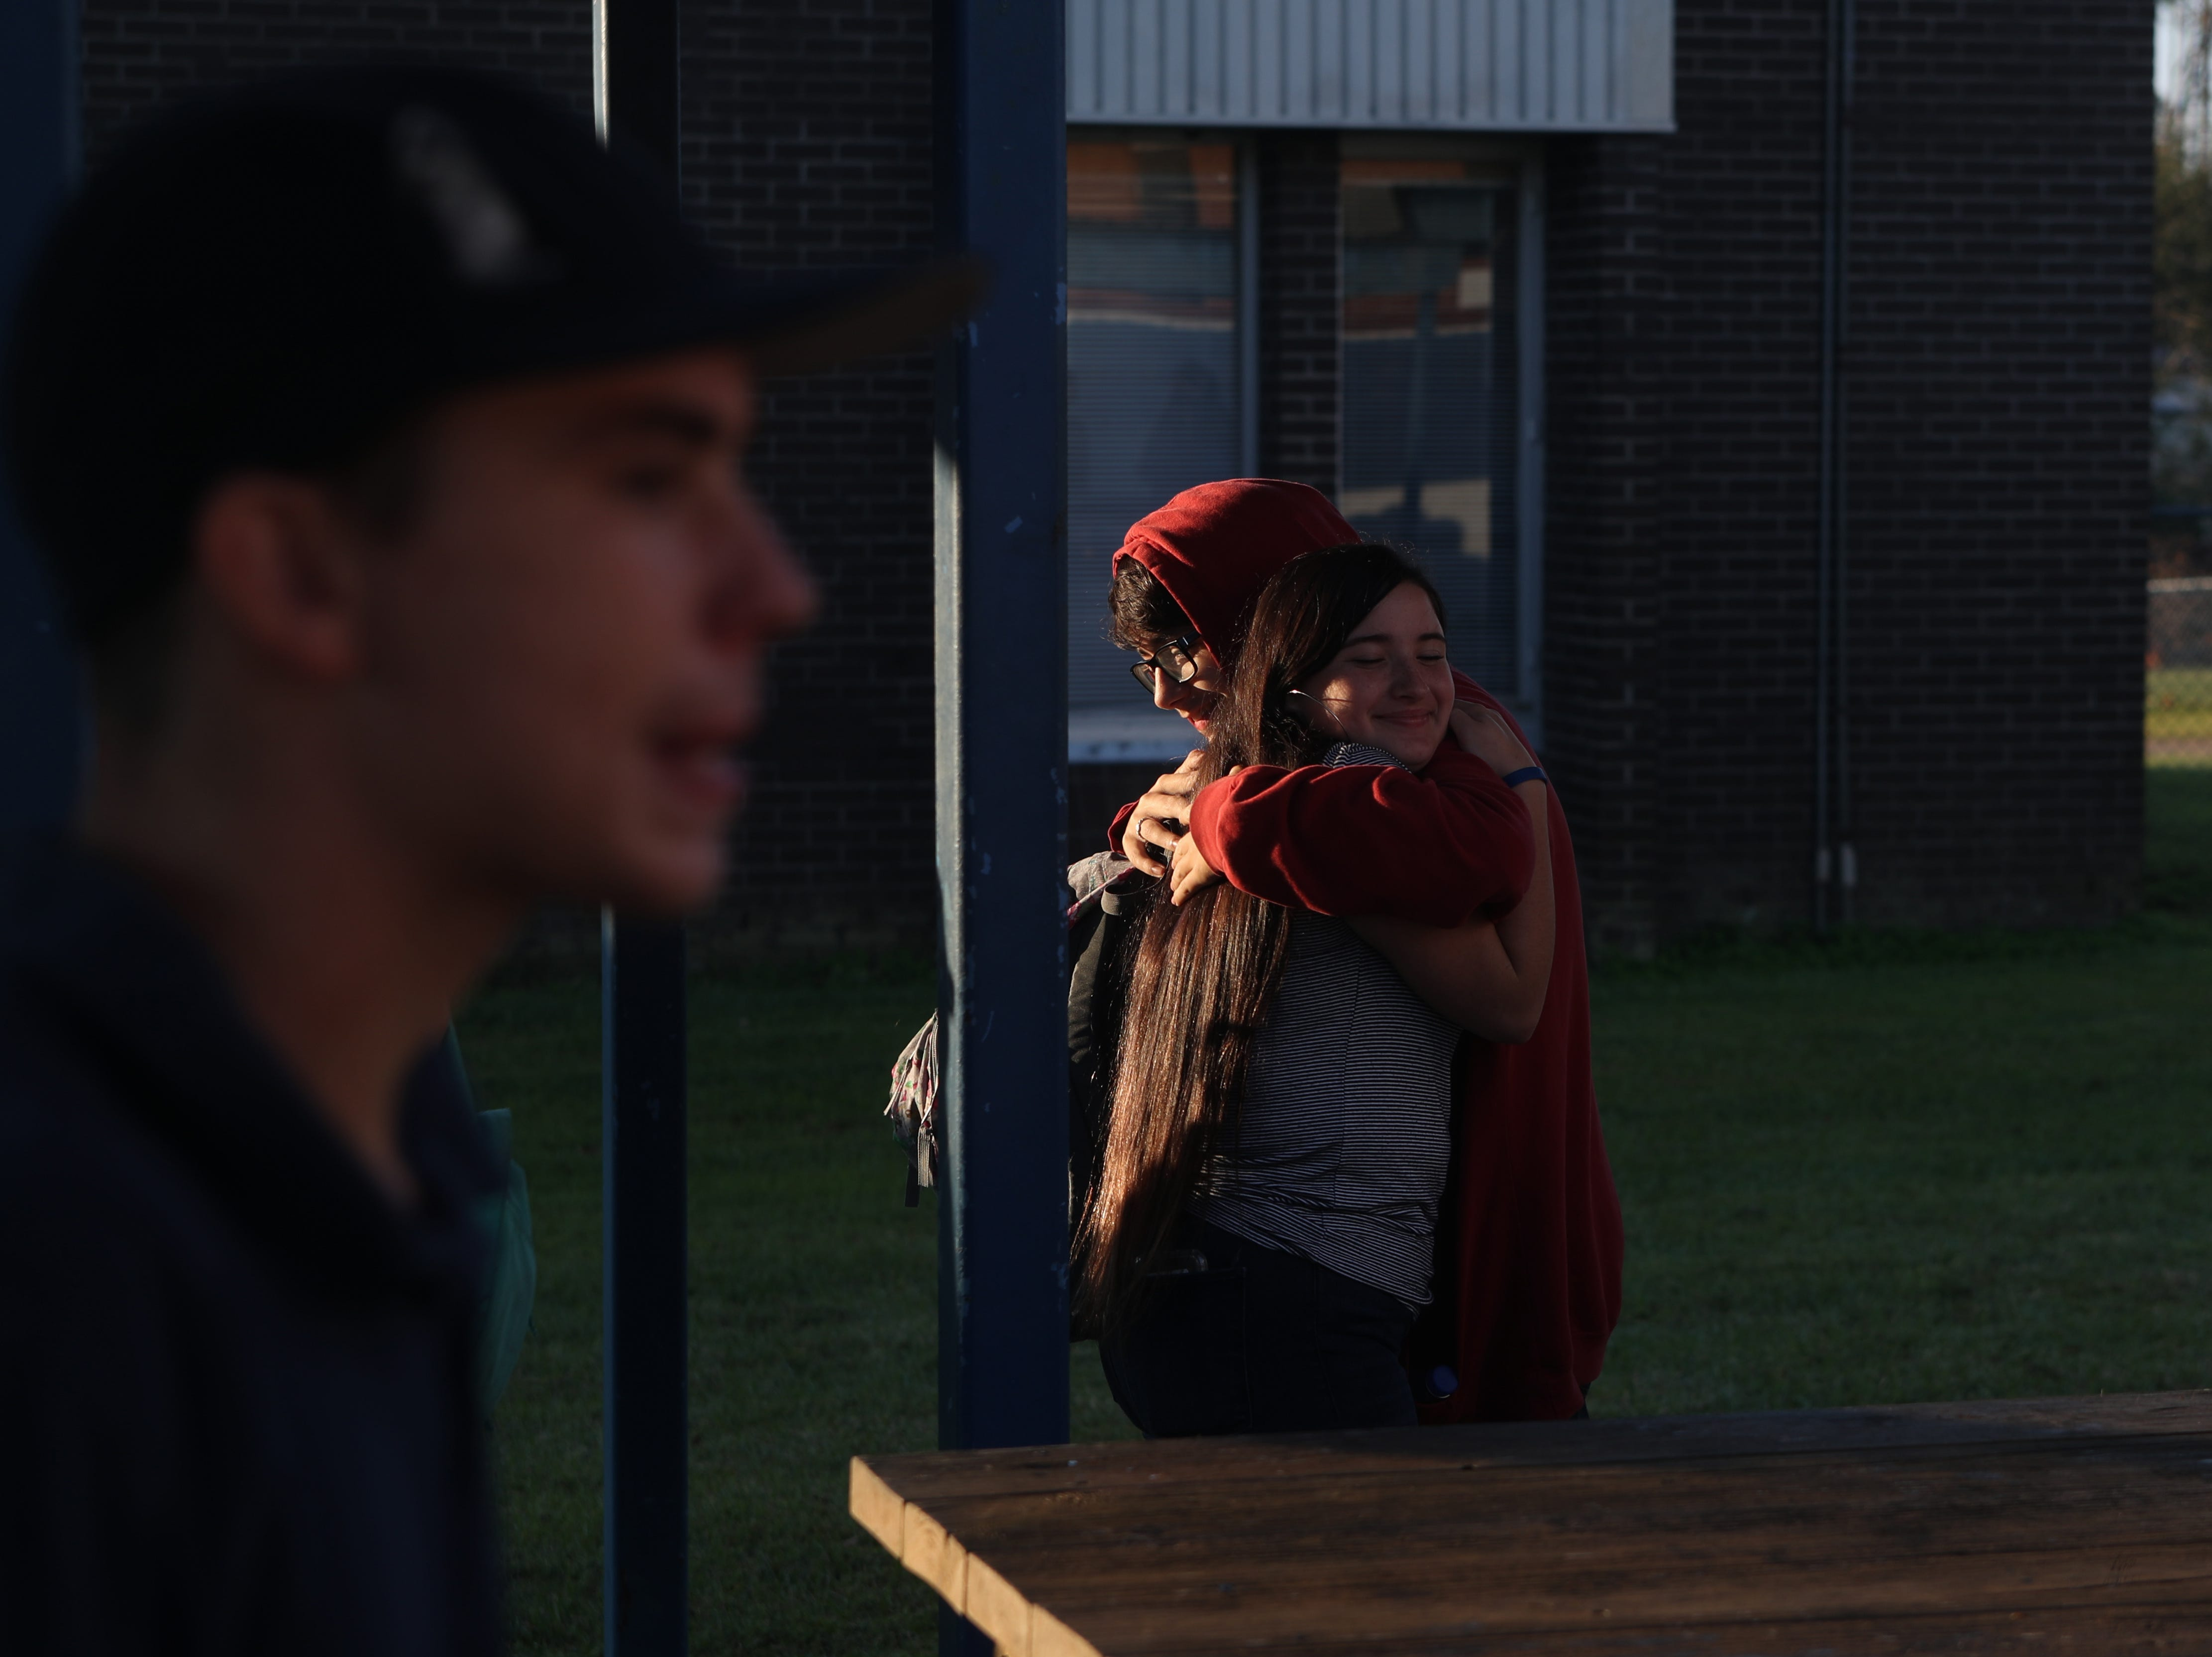 Sunshine Ayers, 14, and Hayden Cannady, 14, both freshmen, hug as they see each other in the courtyard of Sneads High School in Sneads, Fla. Monday, Oct. 29, 2018, before classes resume for the first time since Hurricane Michael hit the community three weeks ago.